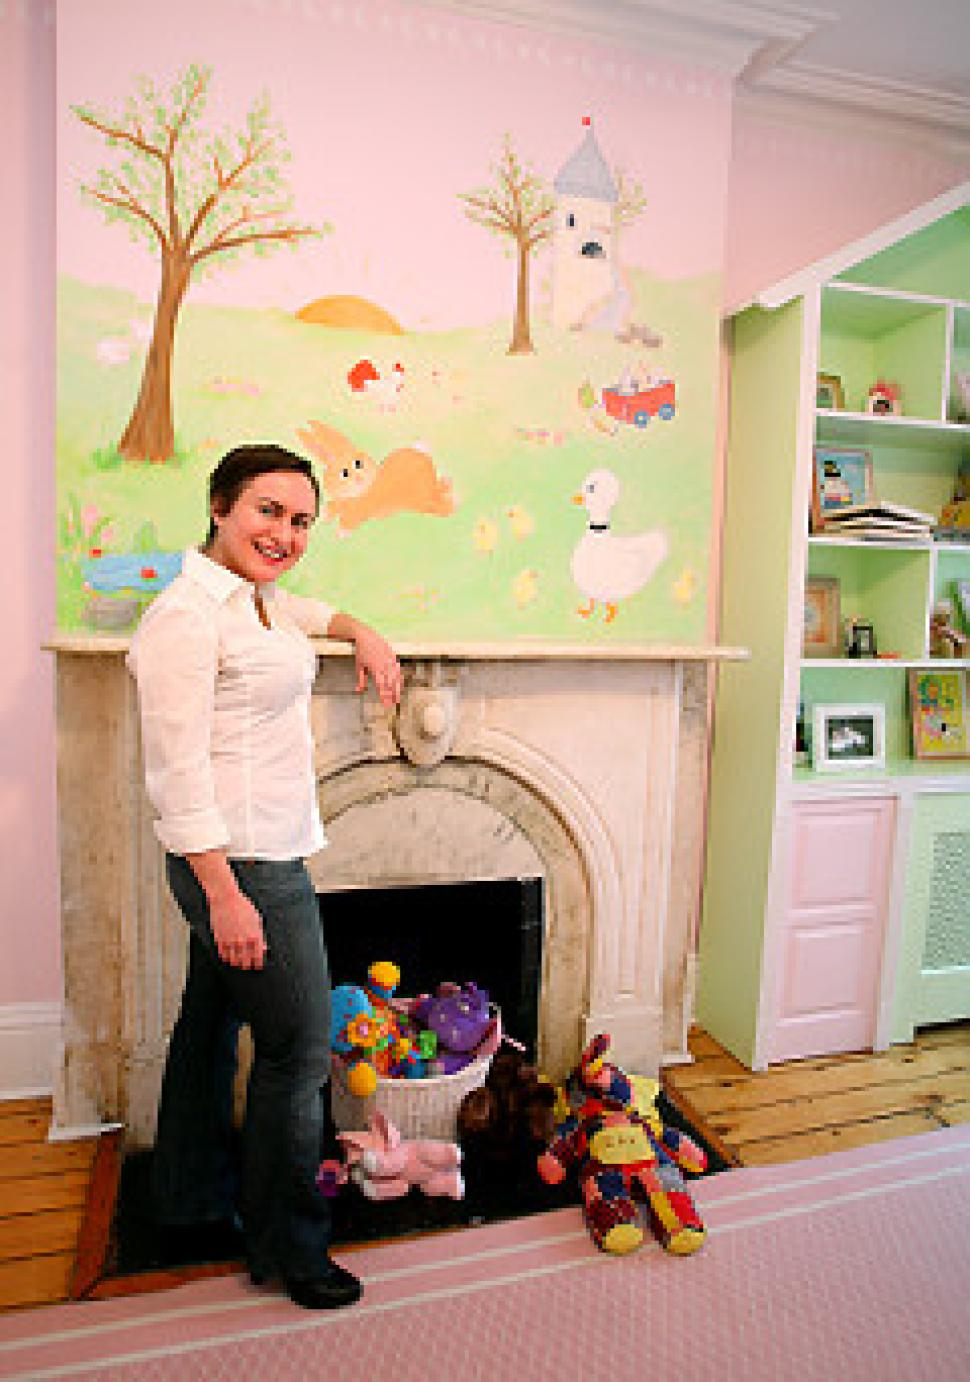 Allyn_Howard_nursery-mural_NYDailyNews.jpg